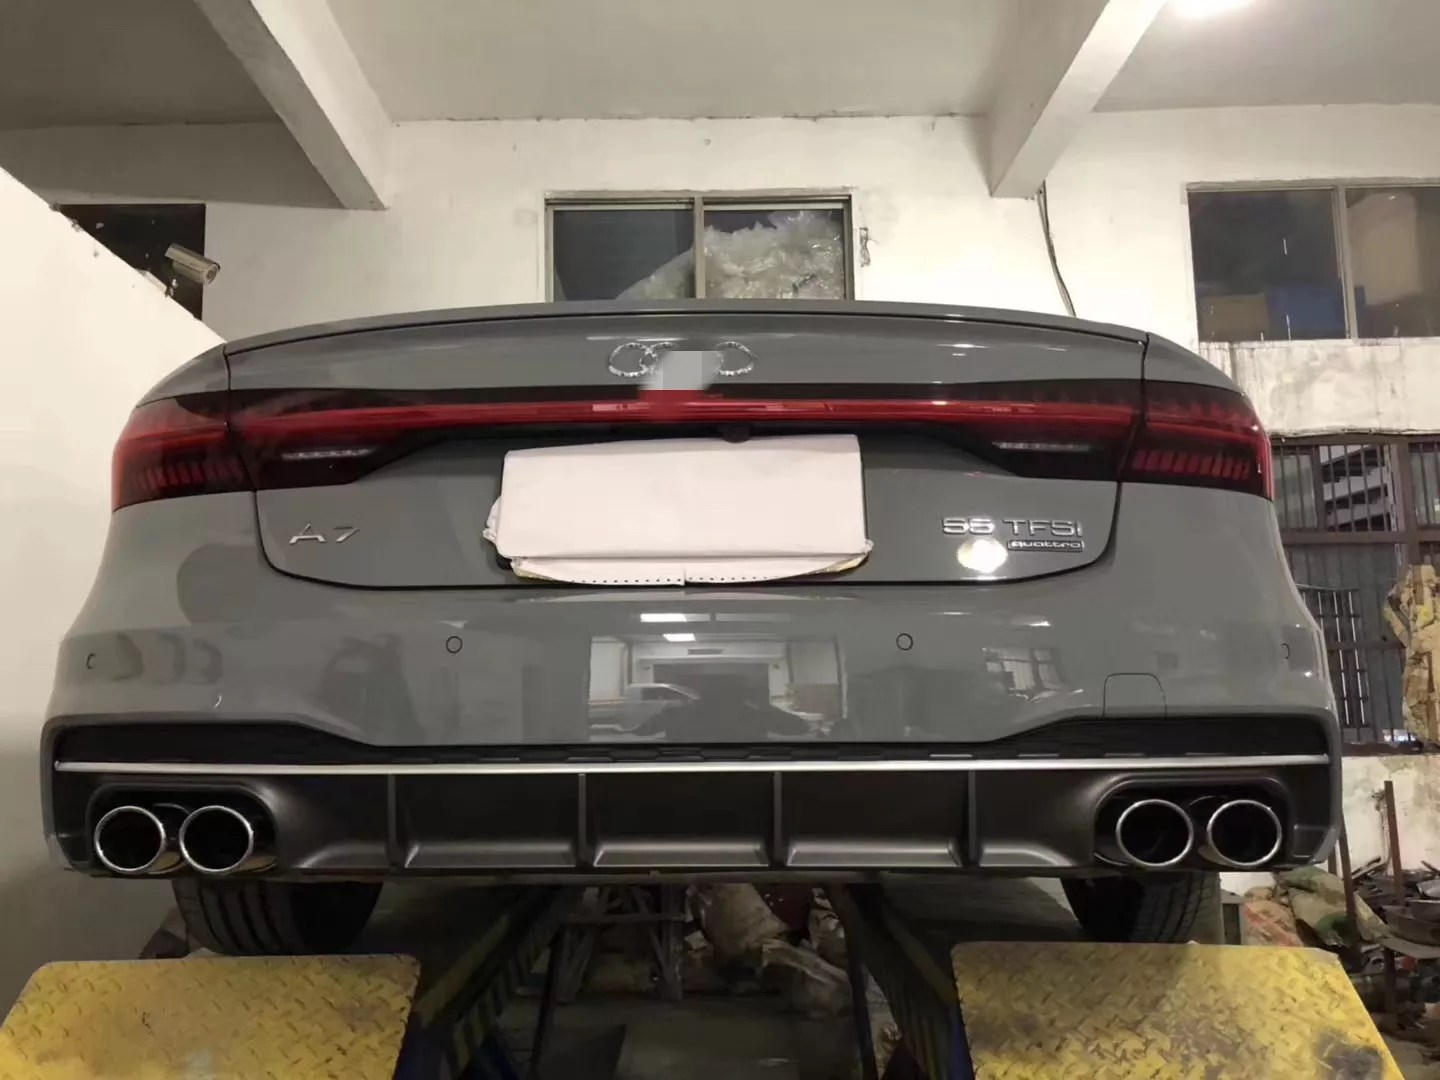 for audi a7 2019 2020 change to s7 rear lip and tail lip bumper parts buy new a7 2019 to s7 high quality rear diffuser with tips and exhaust